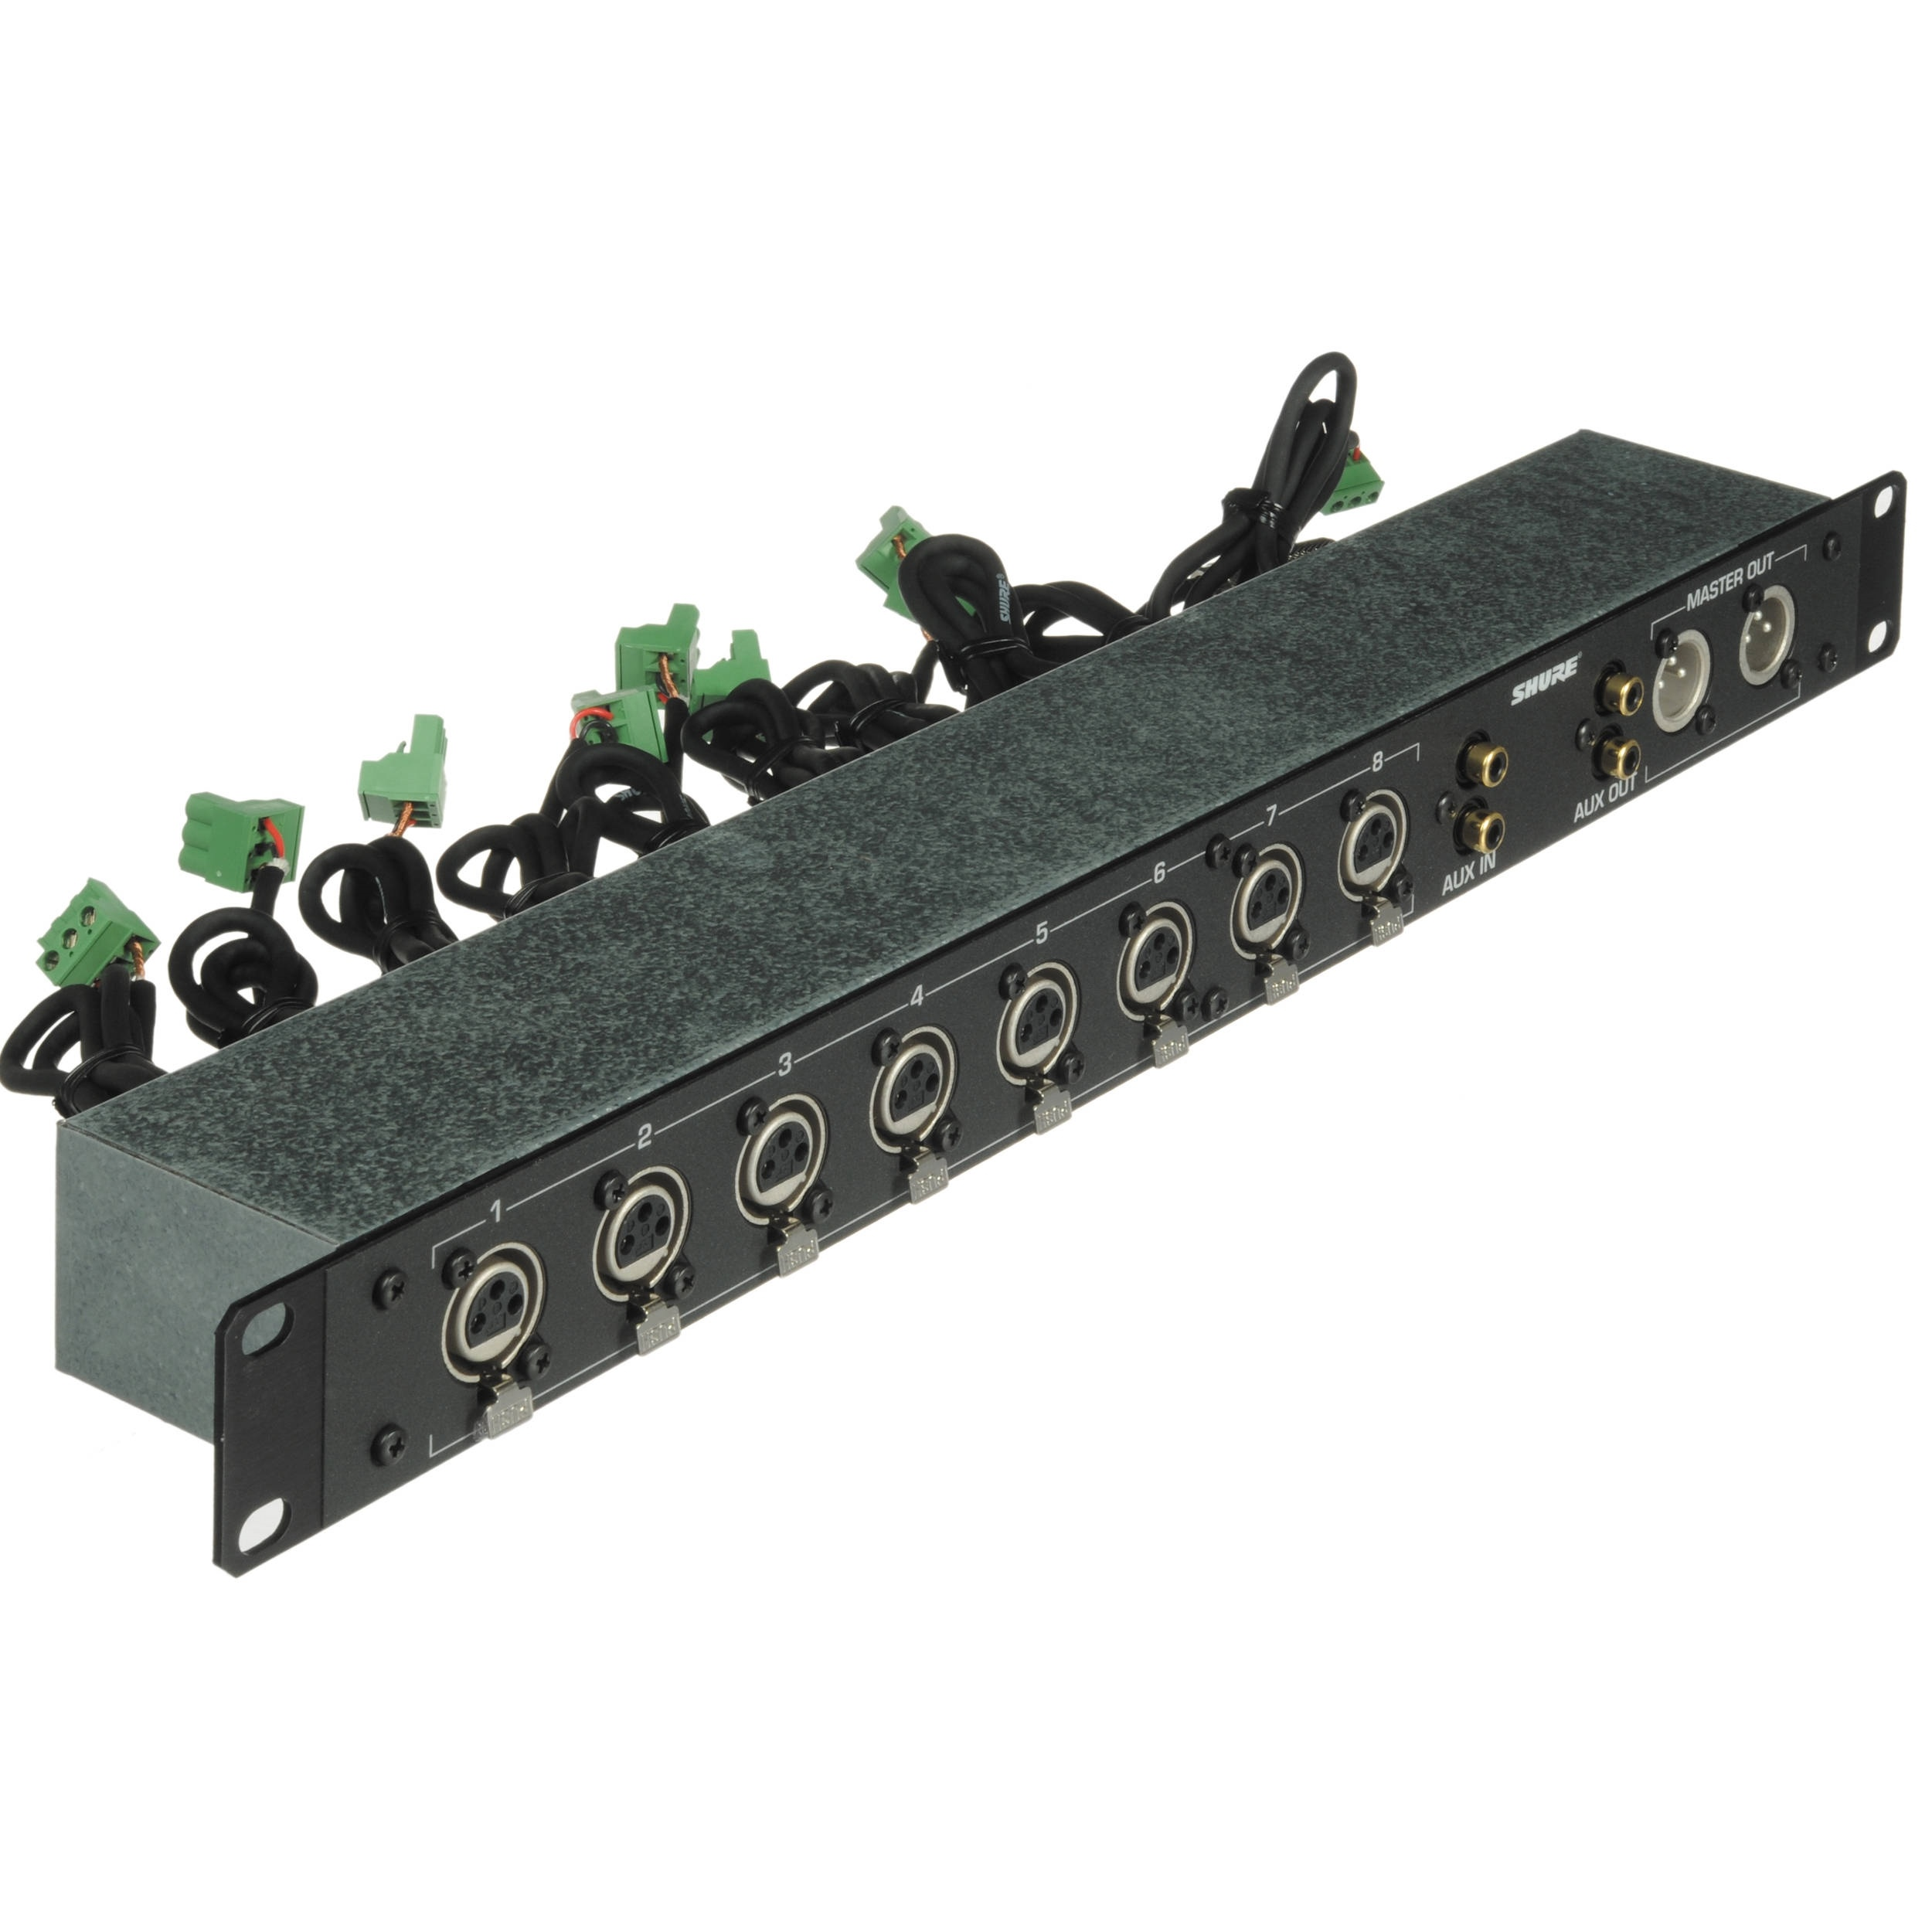 Shure RKC800 Rack Mountable XLR Expansion Kit for Shure SCM800 and 810 Mixers